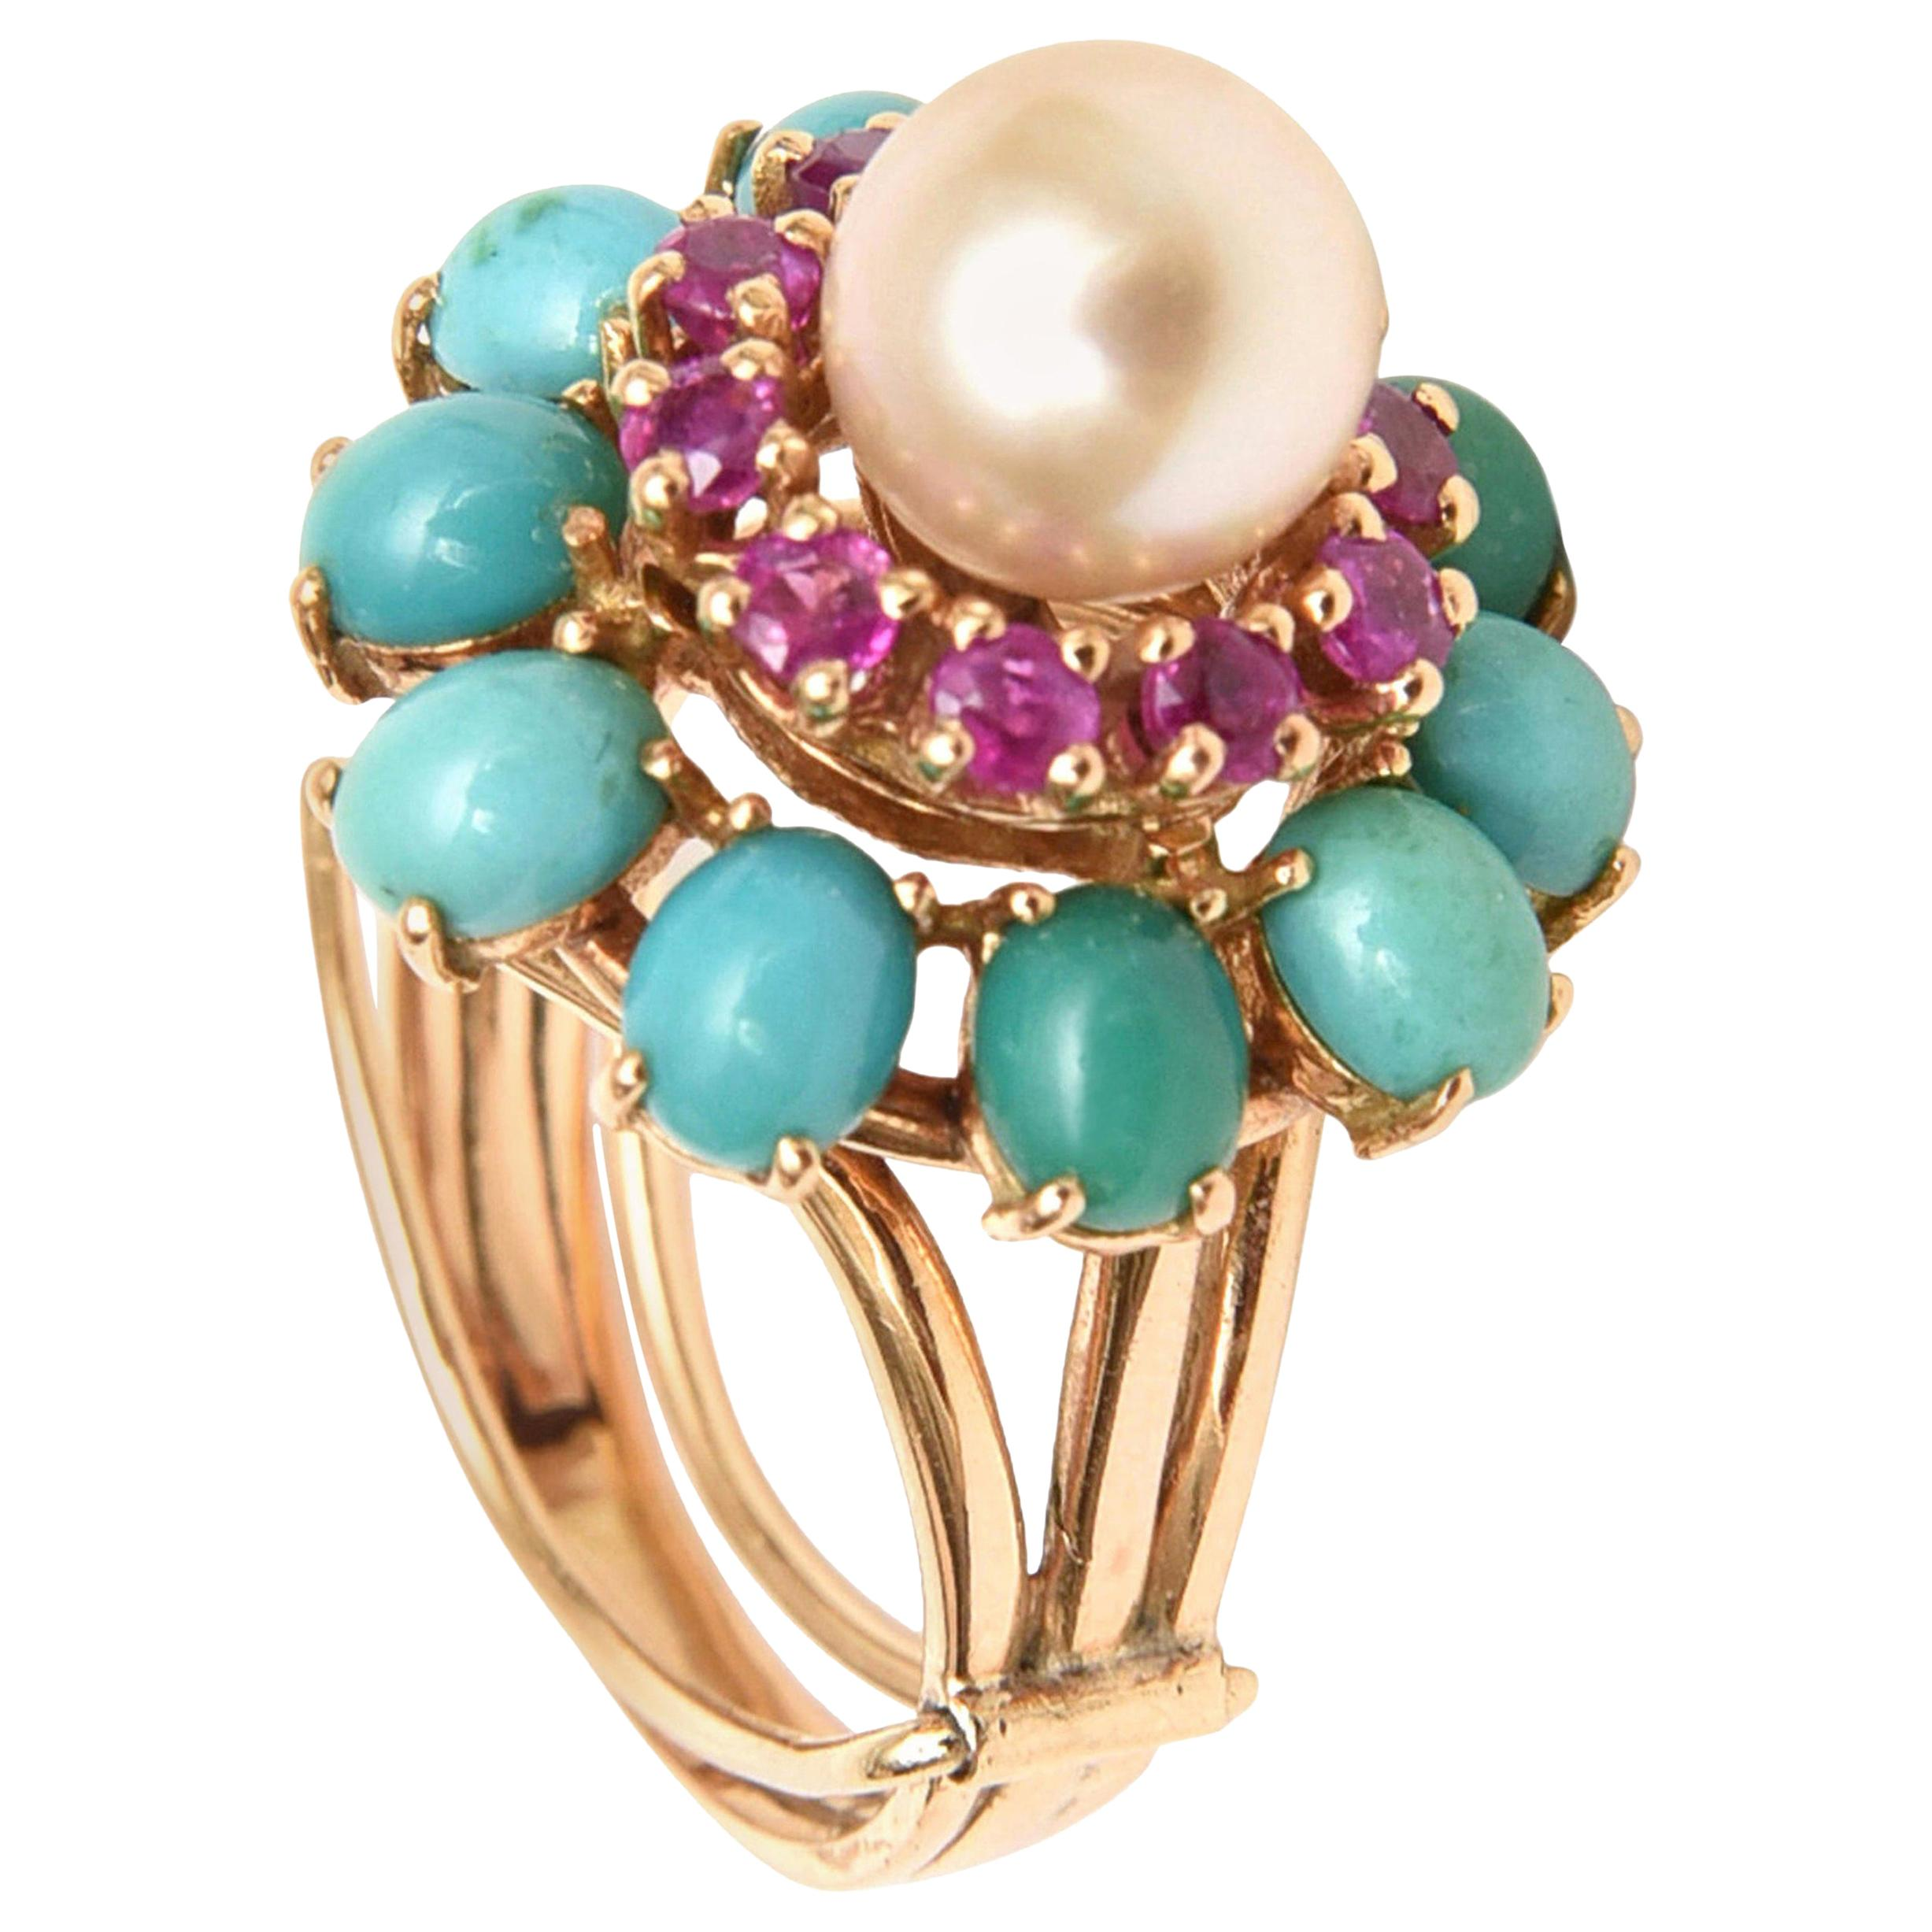 Fashion Jewelry Dome Rings